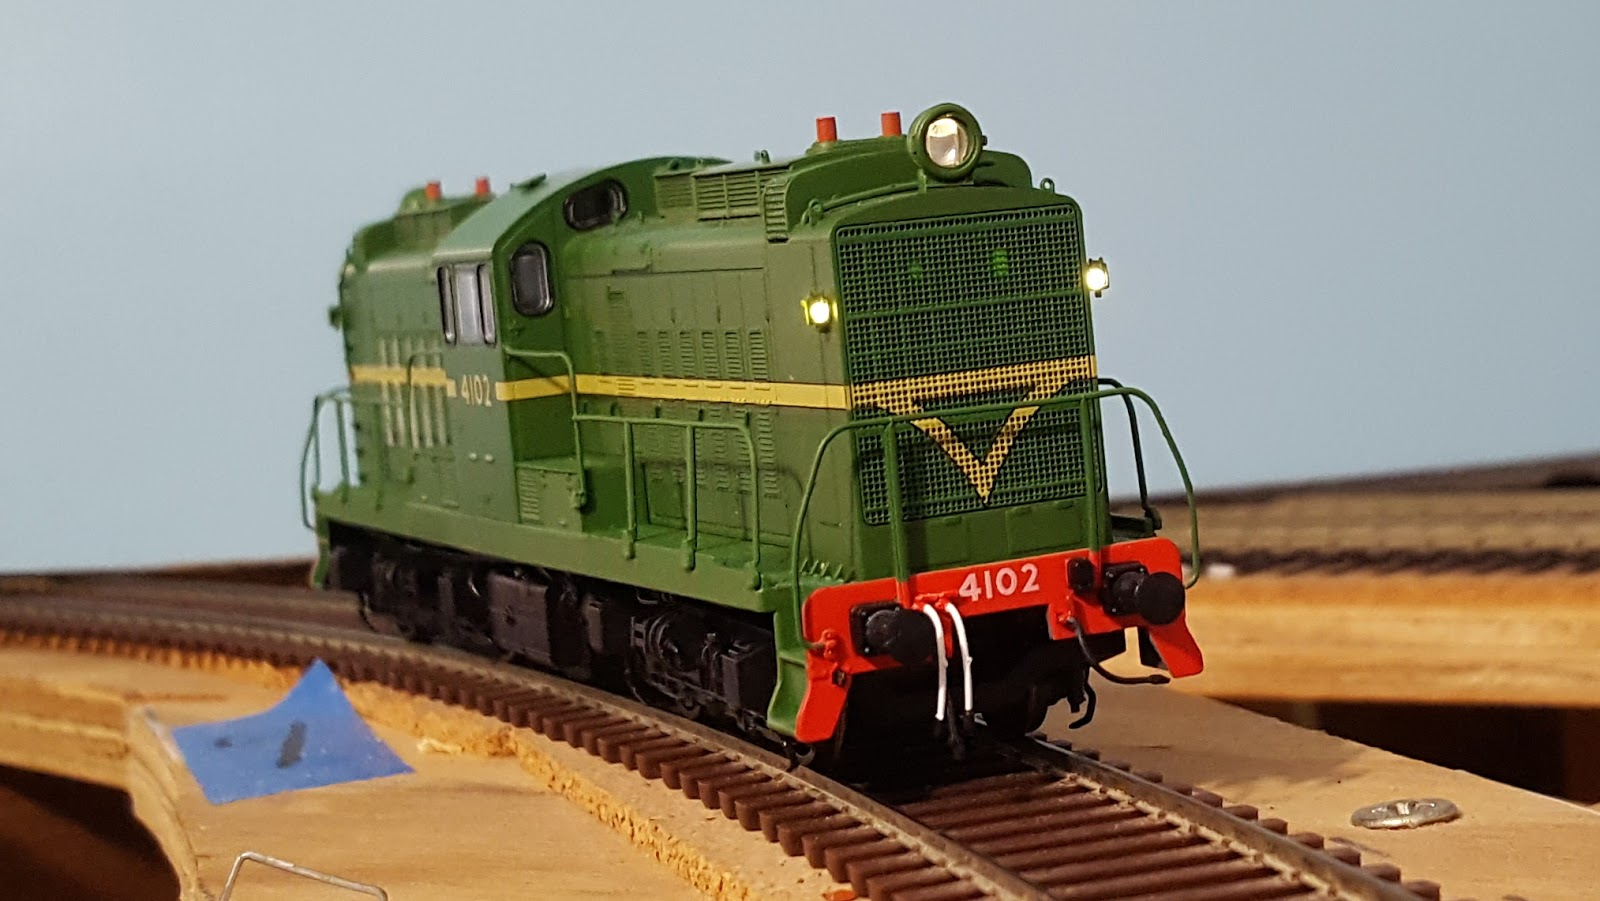 The Mudgee Line Head Lights For Model Trains Headlight And White Markers